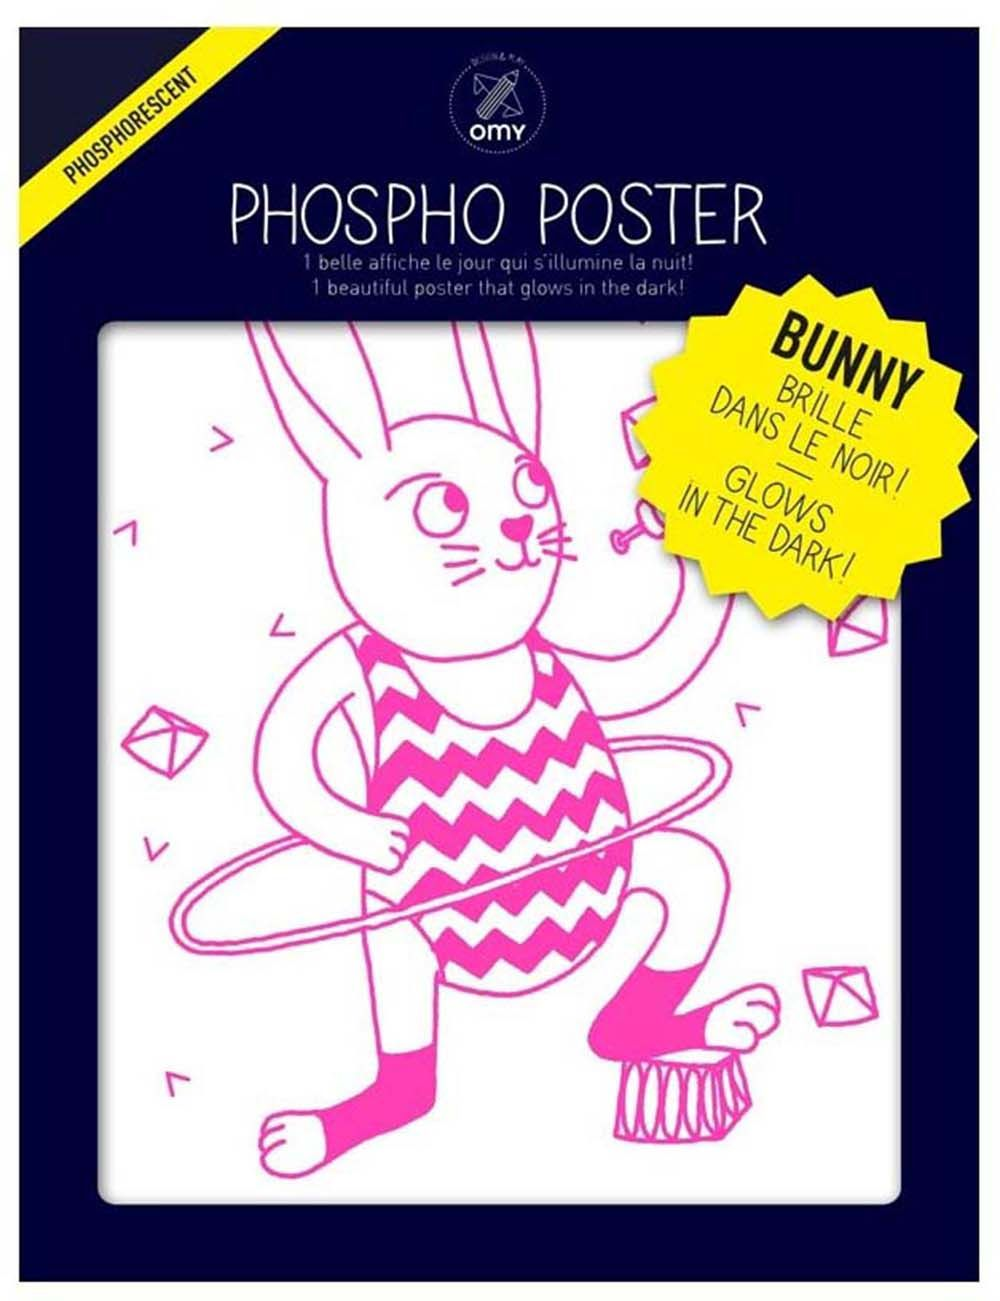 Poster phosphorescent bunny 30 x 40 cm by Omy